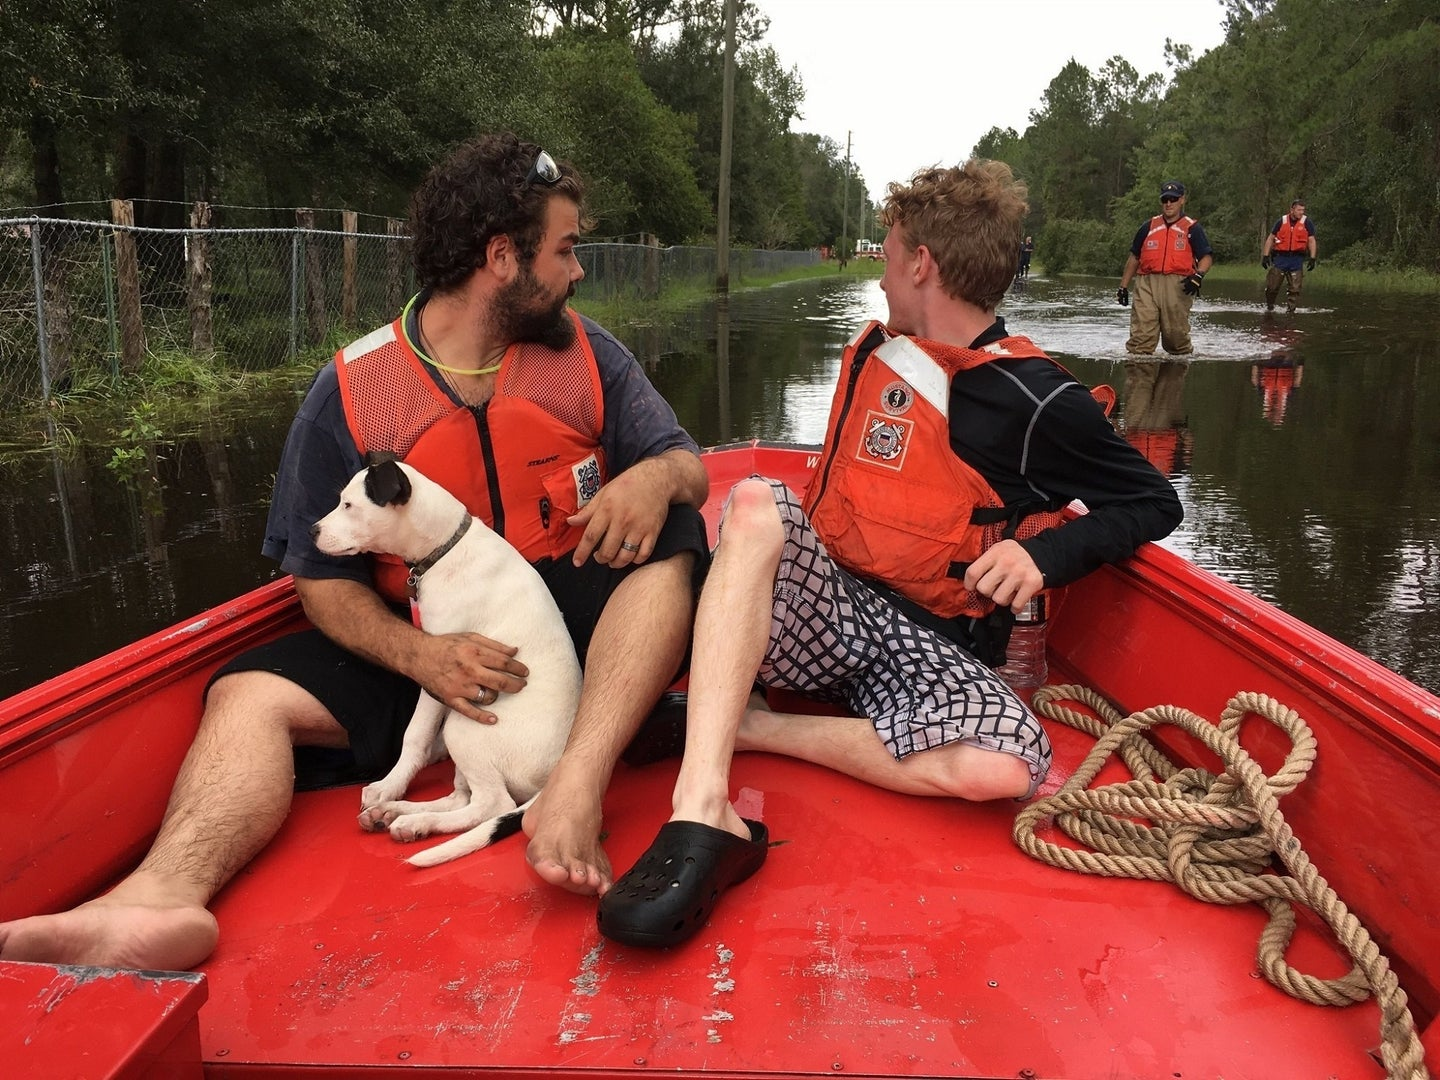 Natural disaster evacuation with two people in life vests on a red boat with a dog